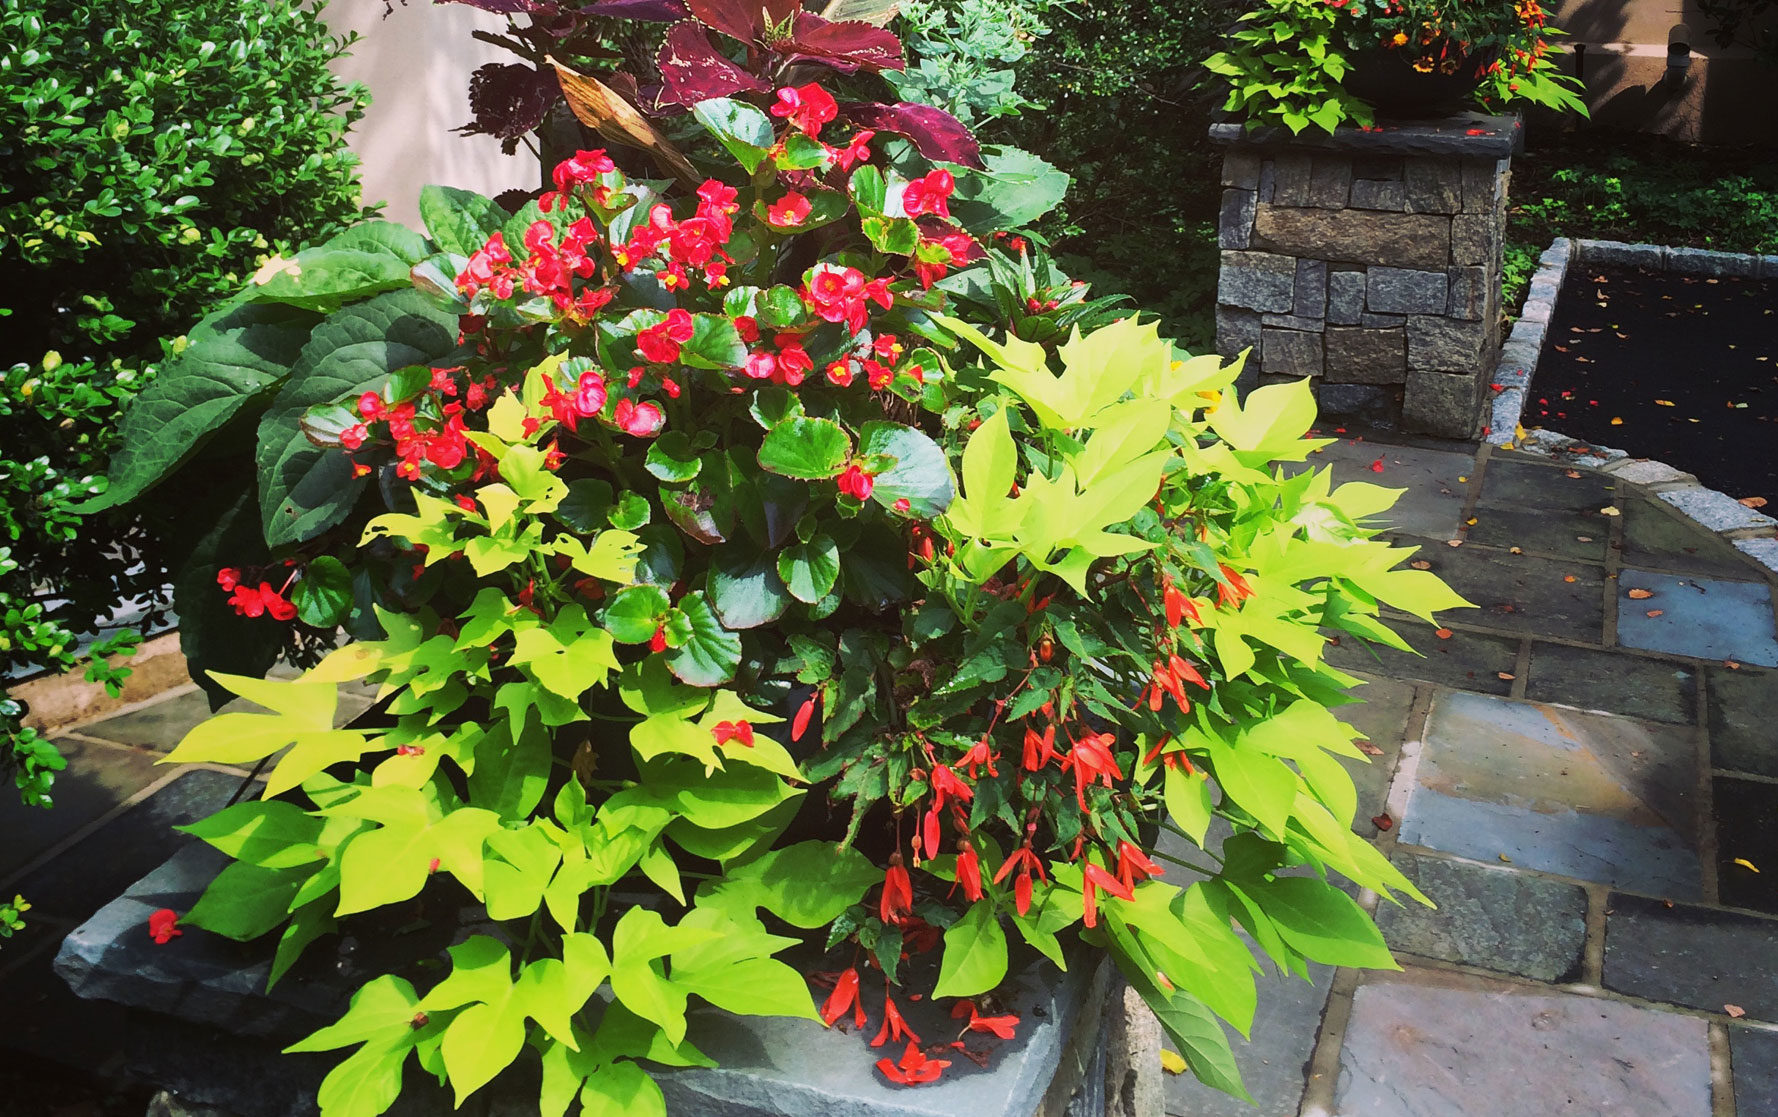 Summer Planter Arrangement with Green and Red Flowers